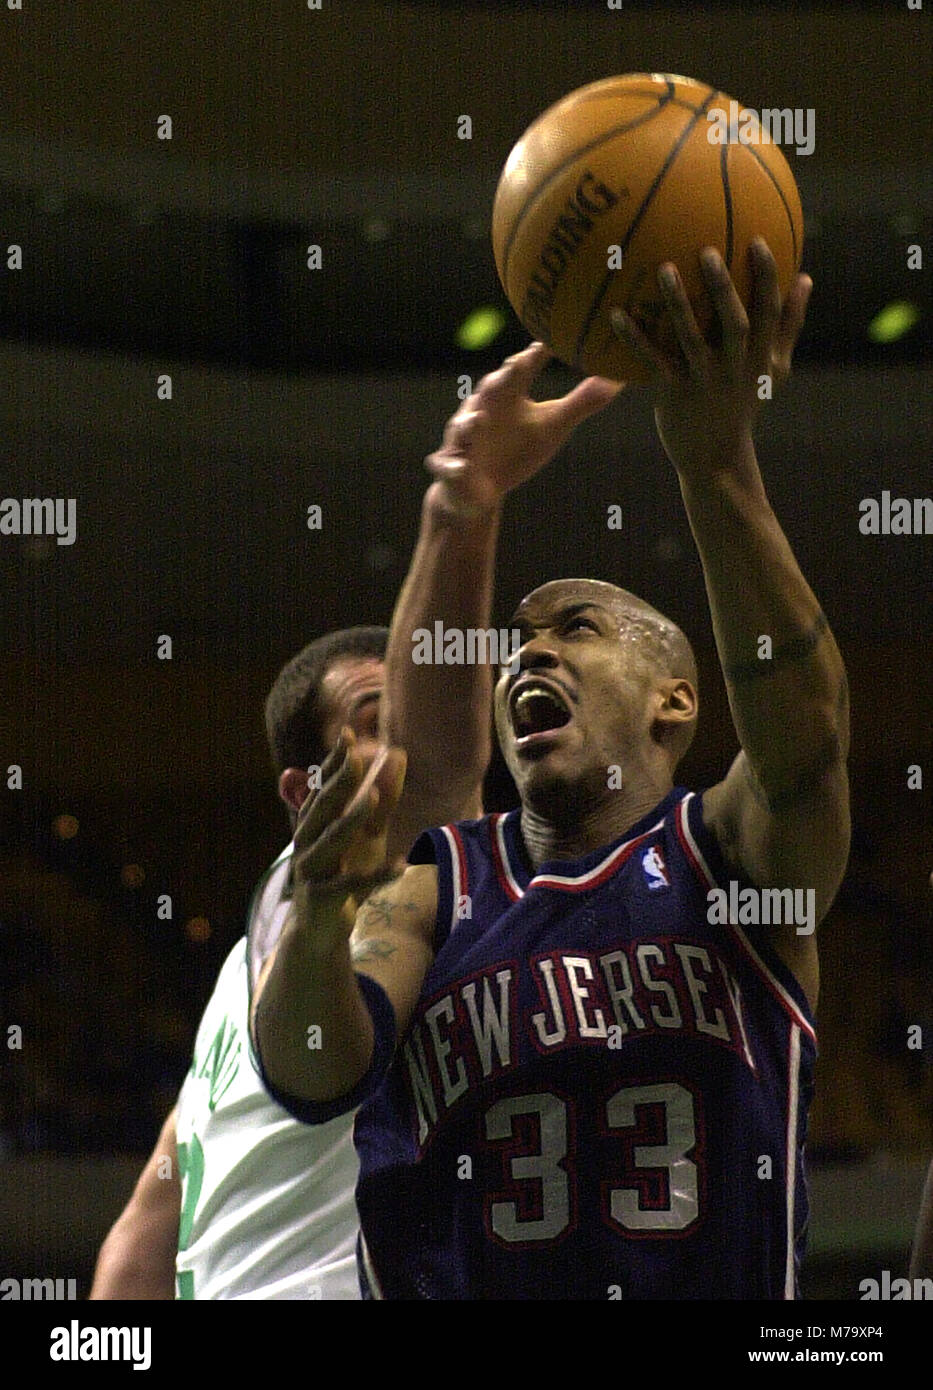 664a50173 New Jersey Nets  33 Stephon Marbury in action against the Boston Celtics at  the Fleet